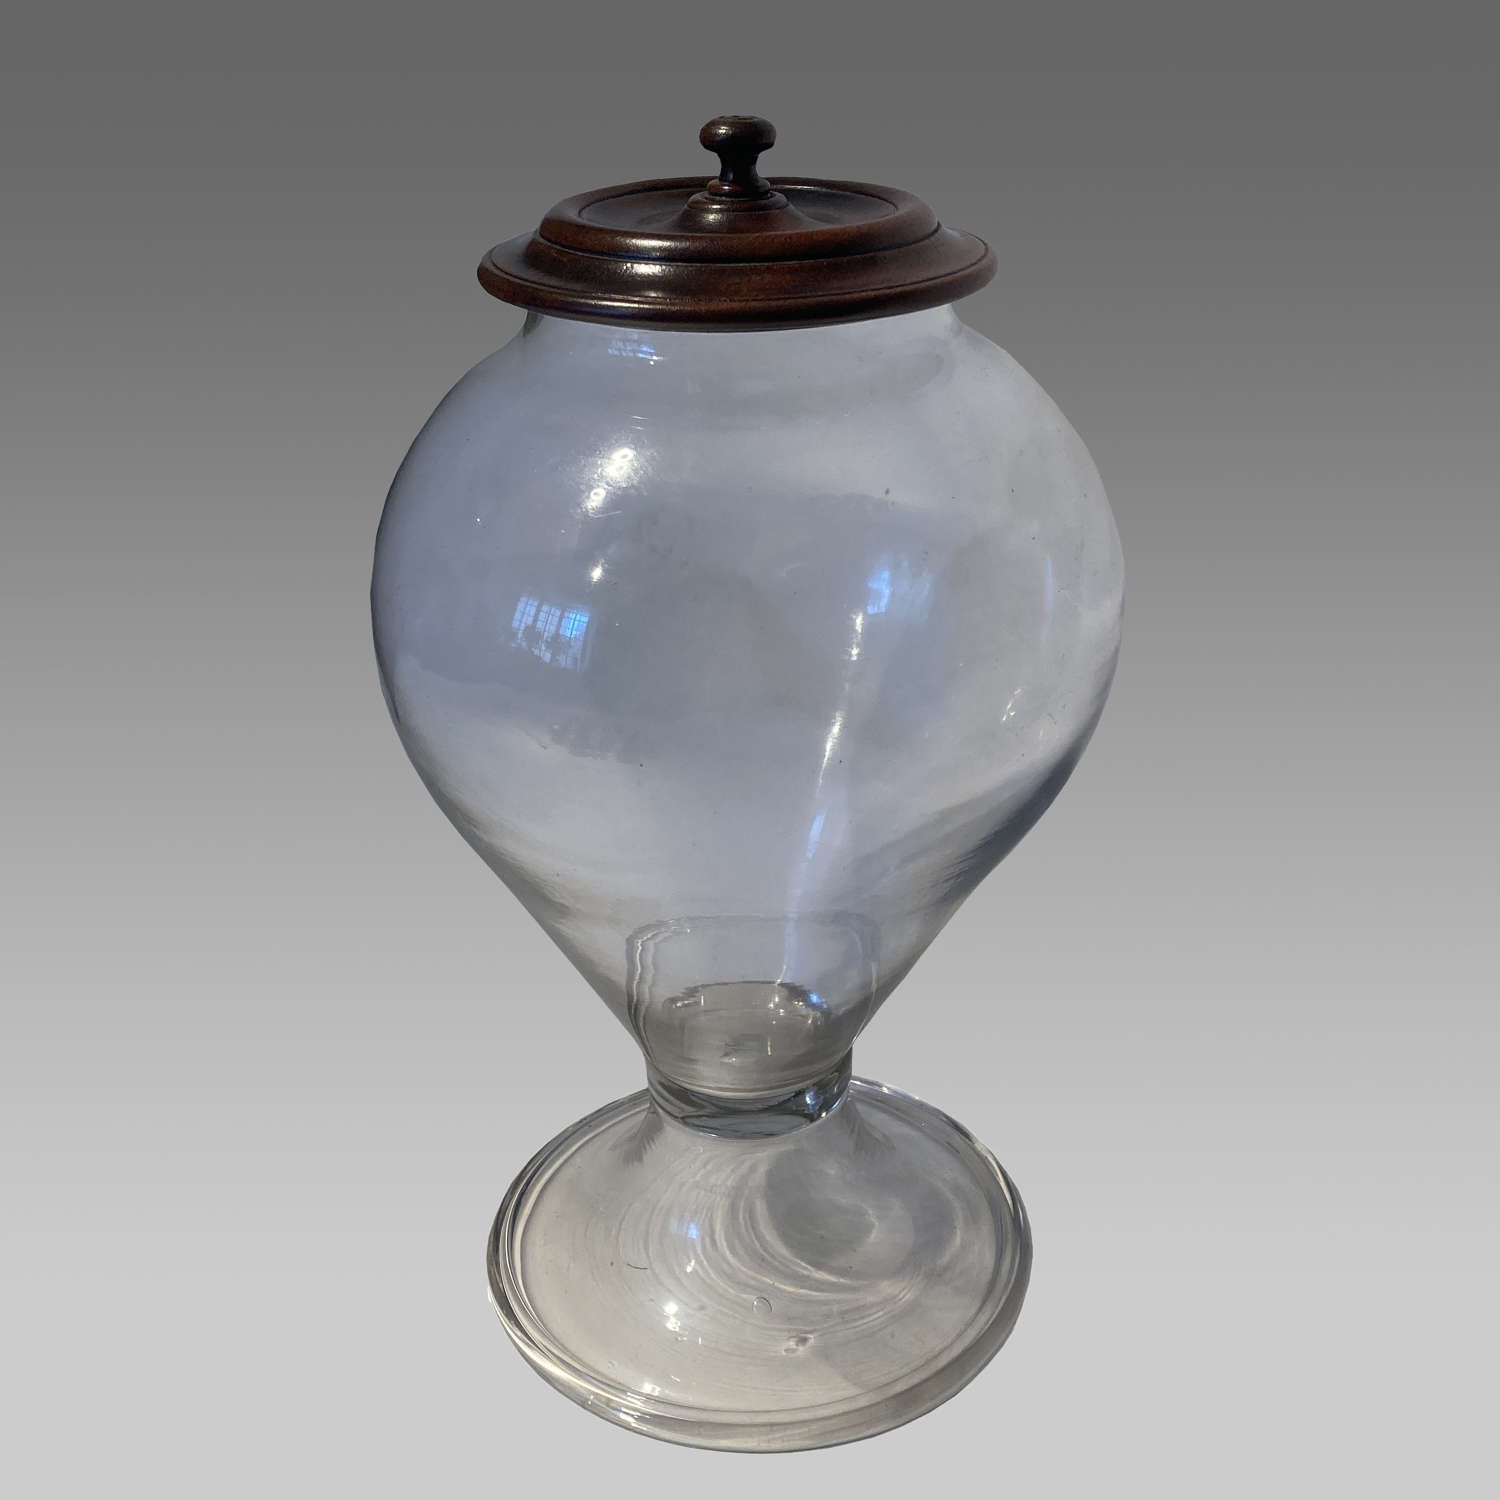 19th century apothecary's glass leech jar